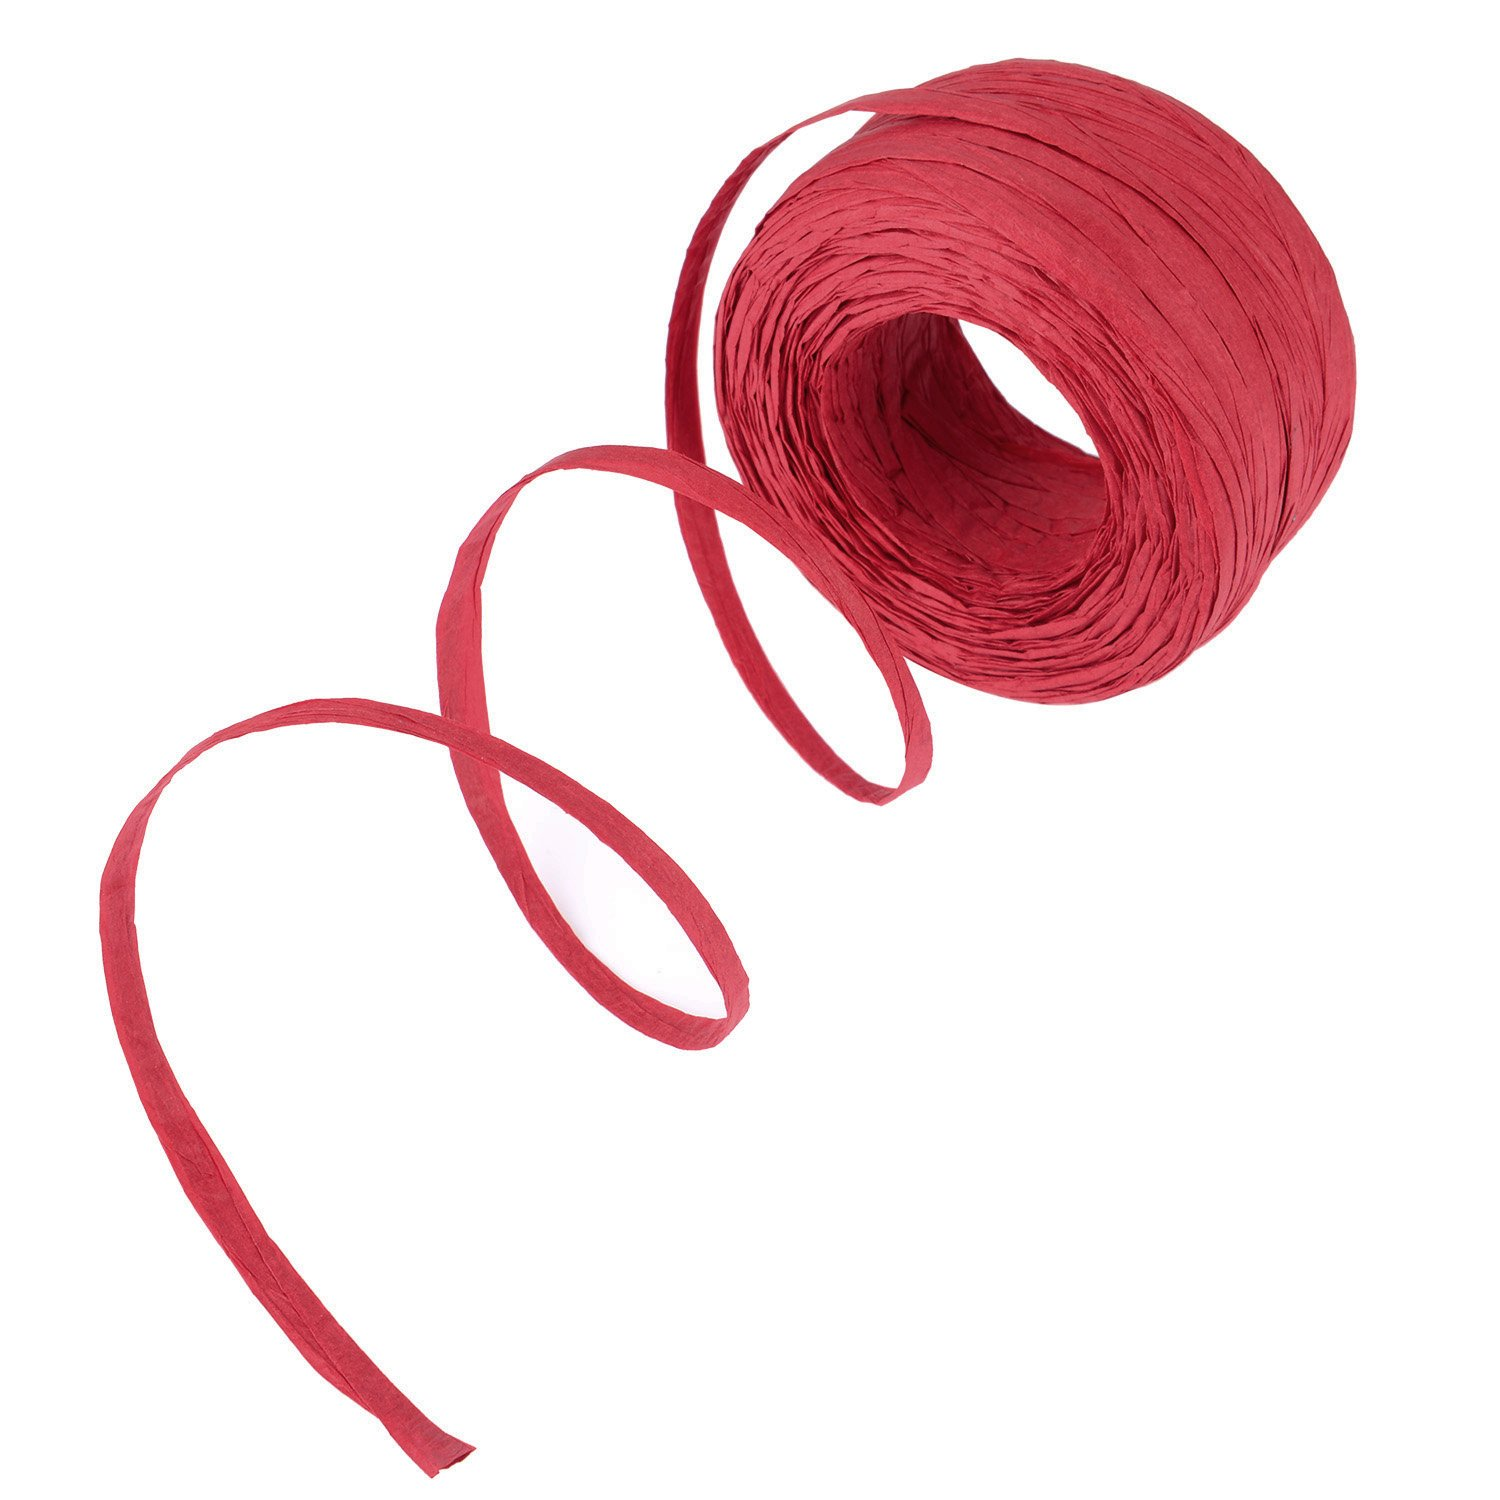 Shappy Paper Craft Ribbon Raffia Roll, 1/ 4 Inch by 100 Yards, Red